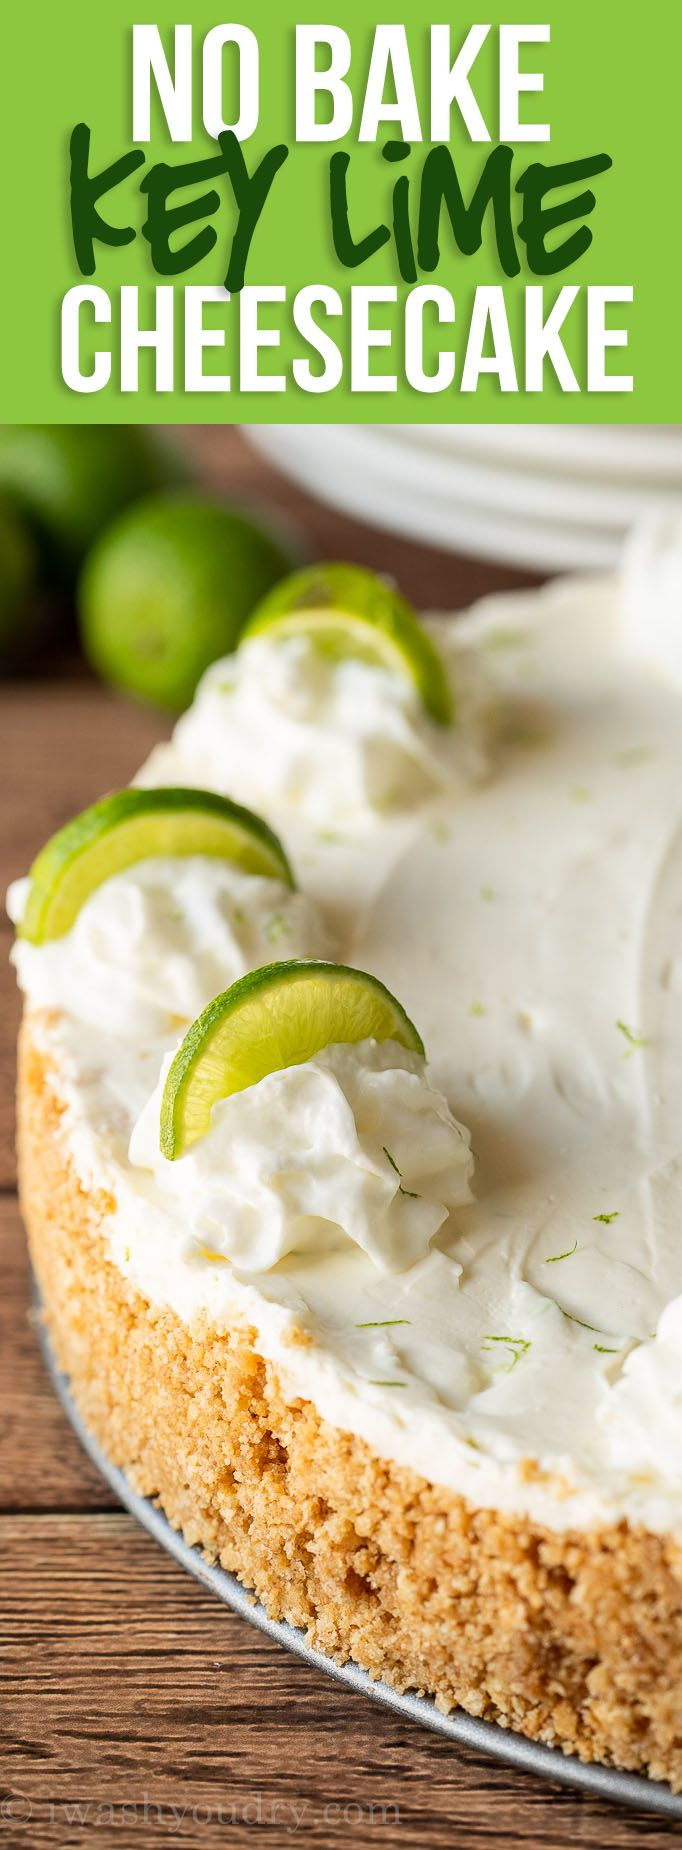 Key Lime No Bake Cheesecake Recipe Recipe Key Lime No Bake Cheesecake Recipes Key Lime No Bake Cheesecake